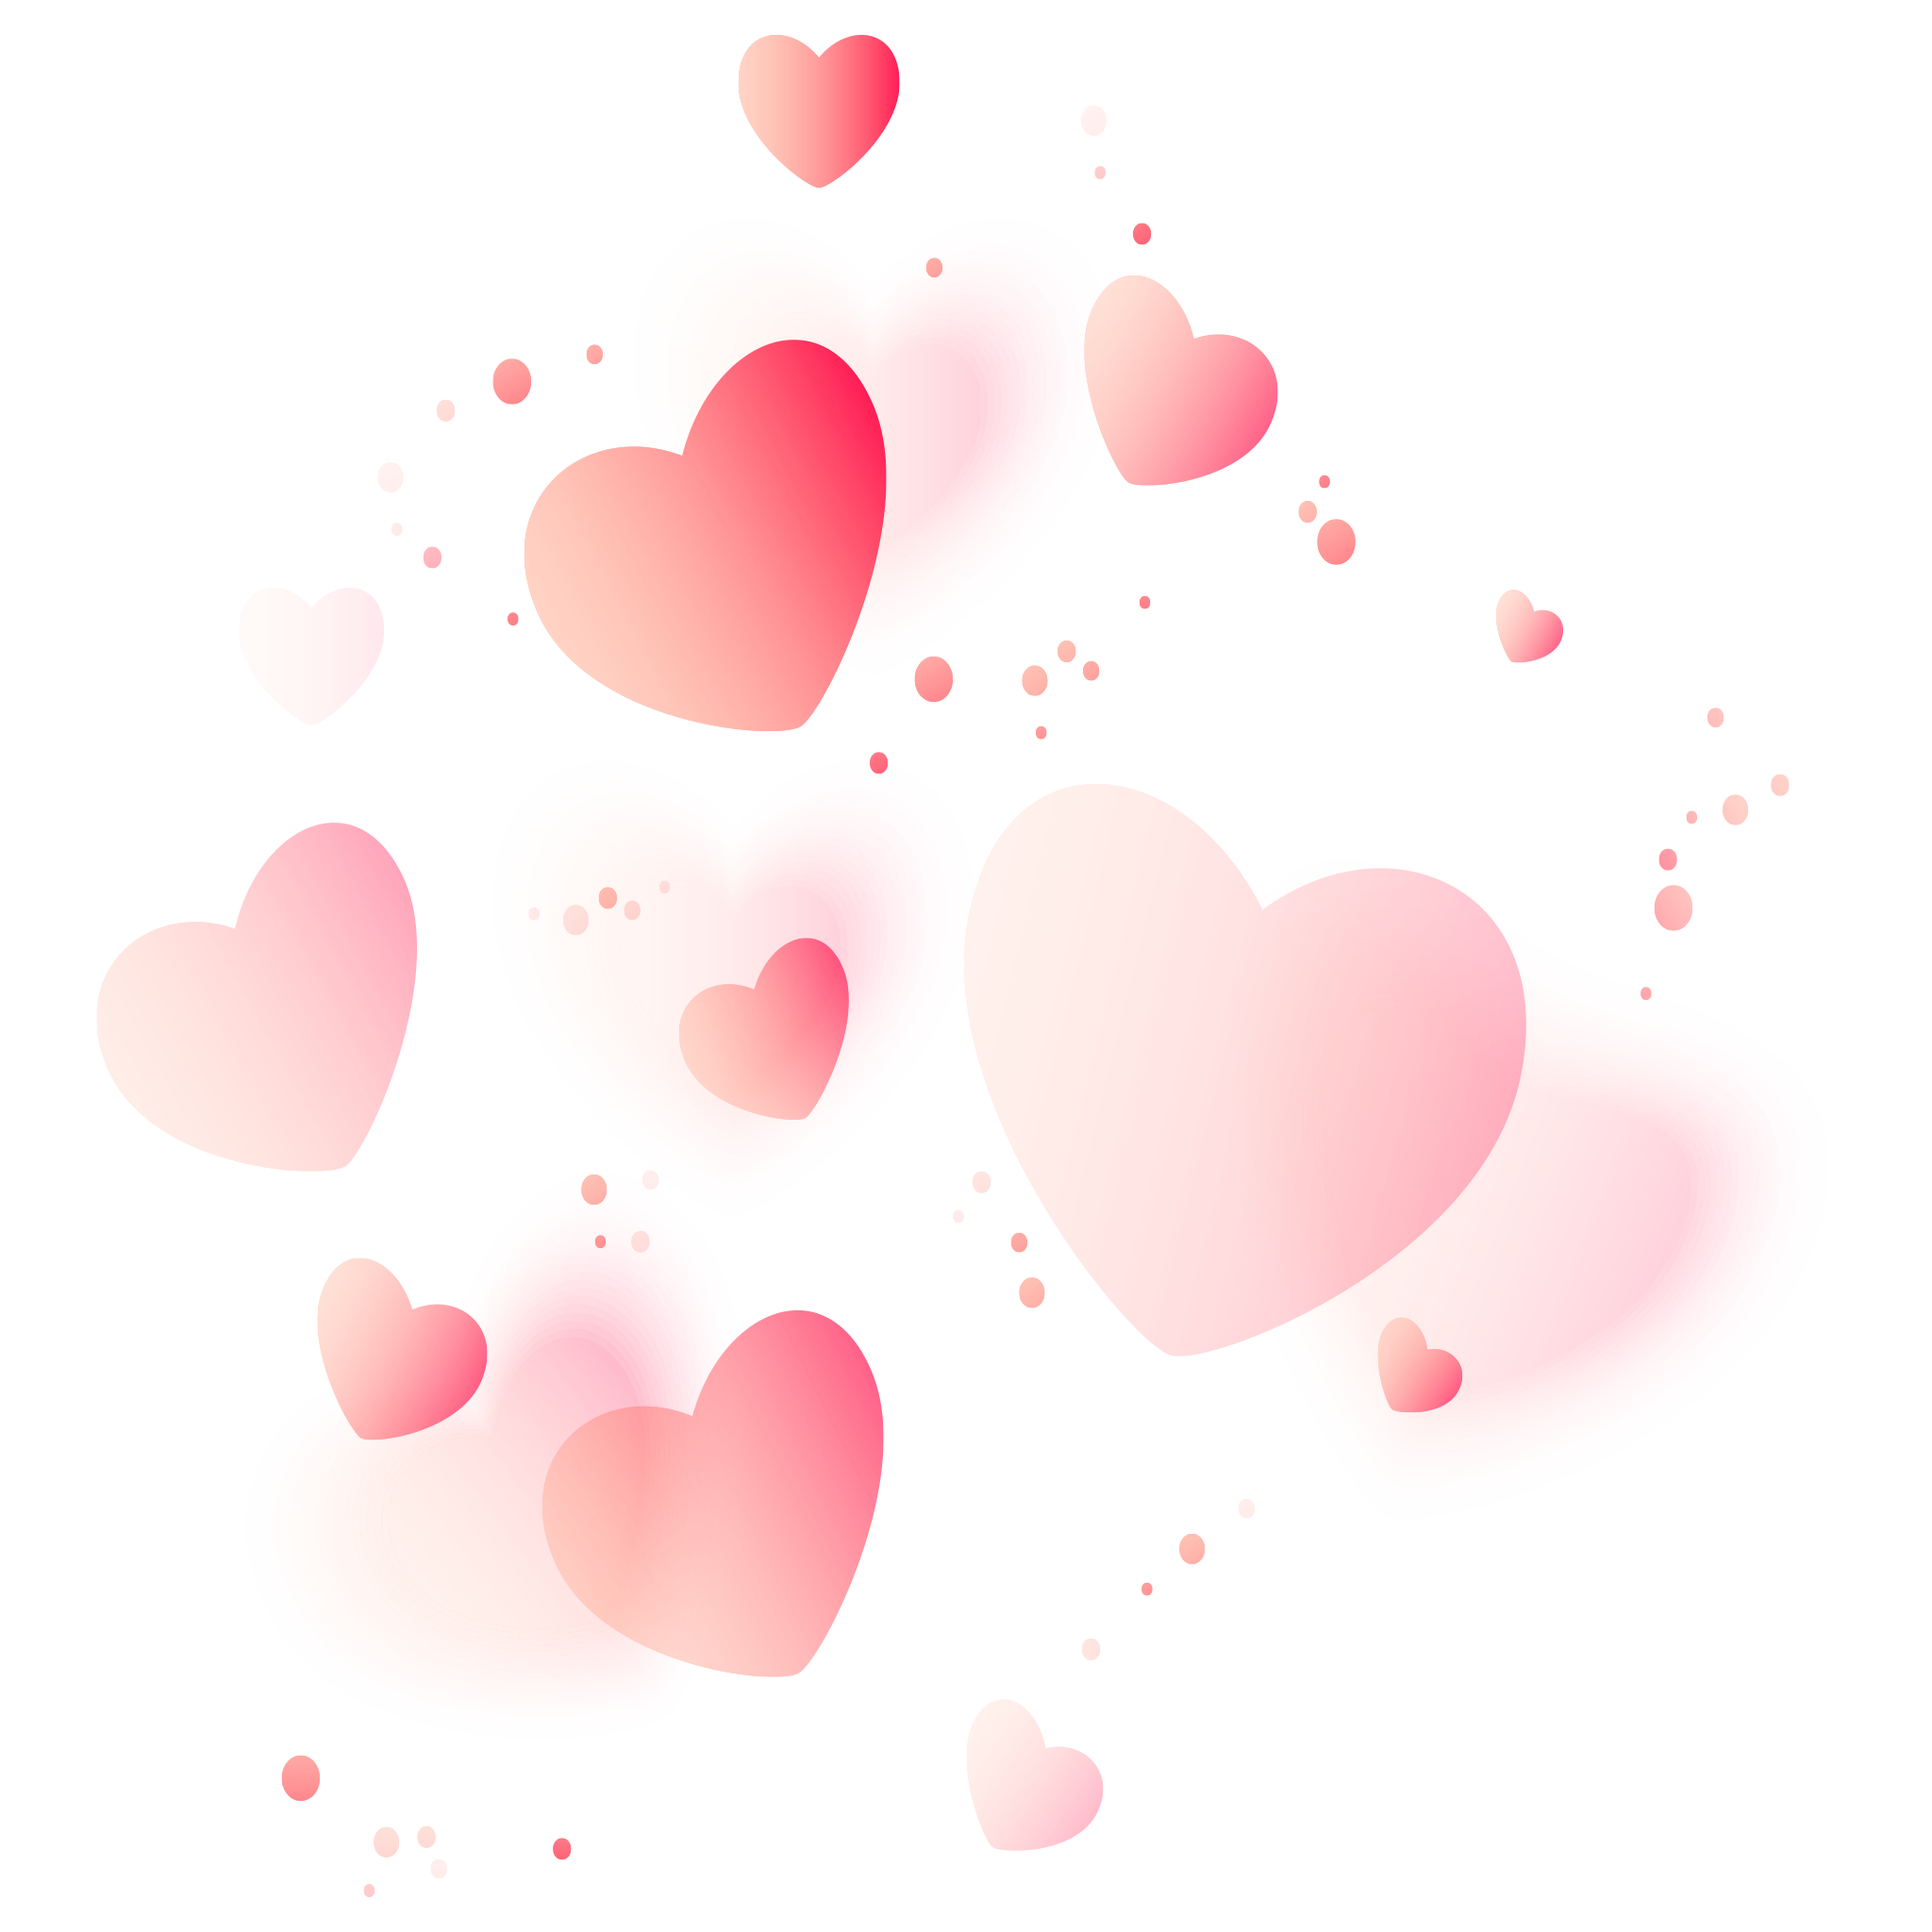 Heart background png. Hd image free download